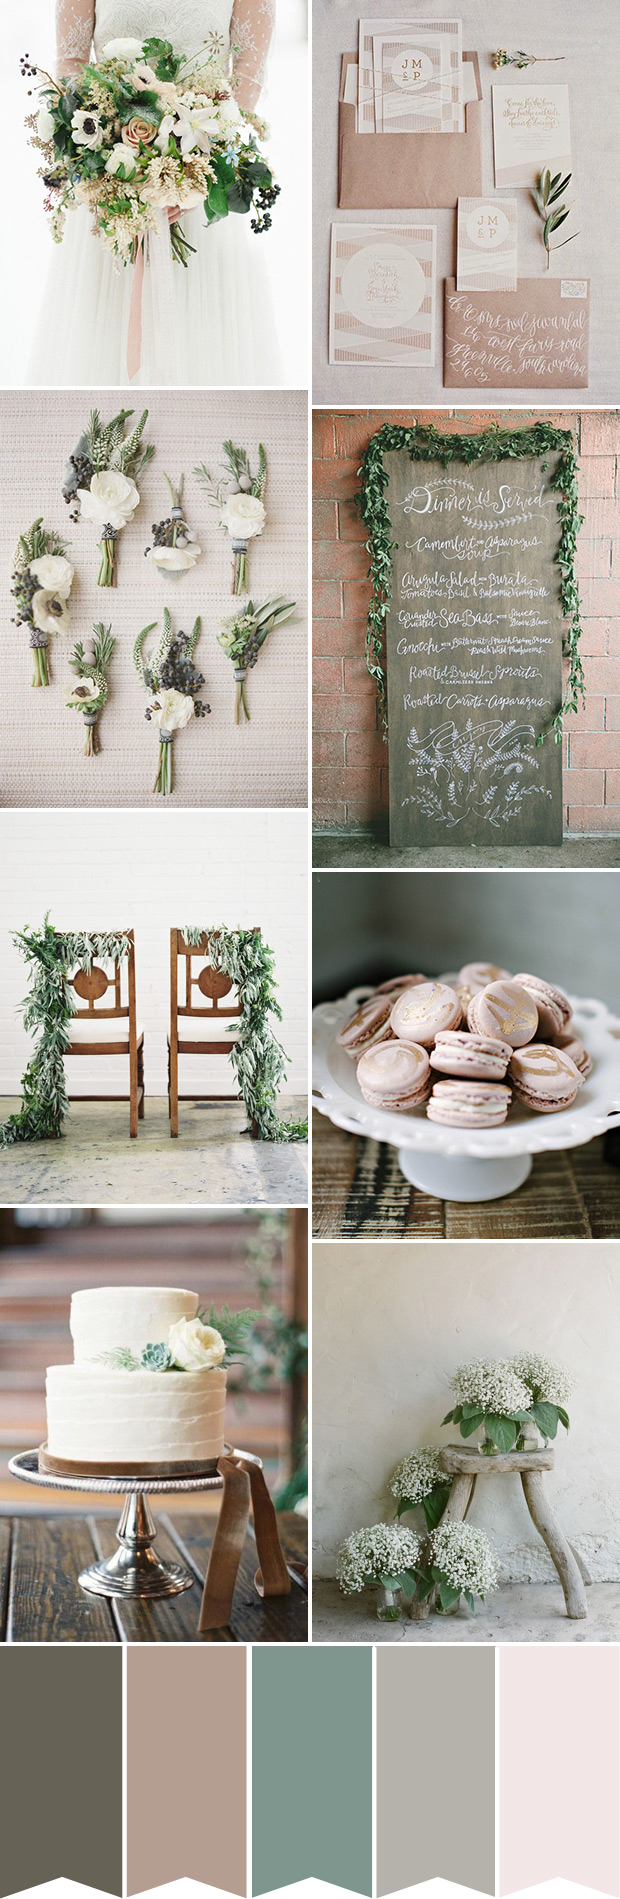 Rustic Wedding Colors Natural Elegance A Beautiful Rustic Wedding Palette Onefabday